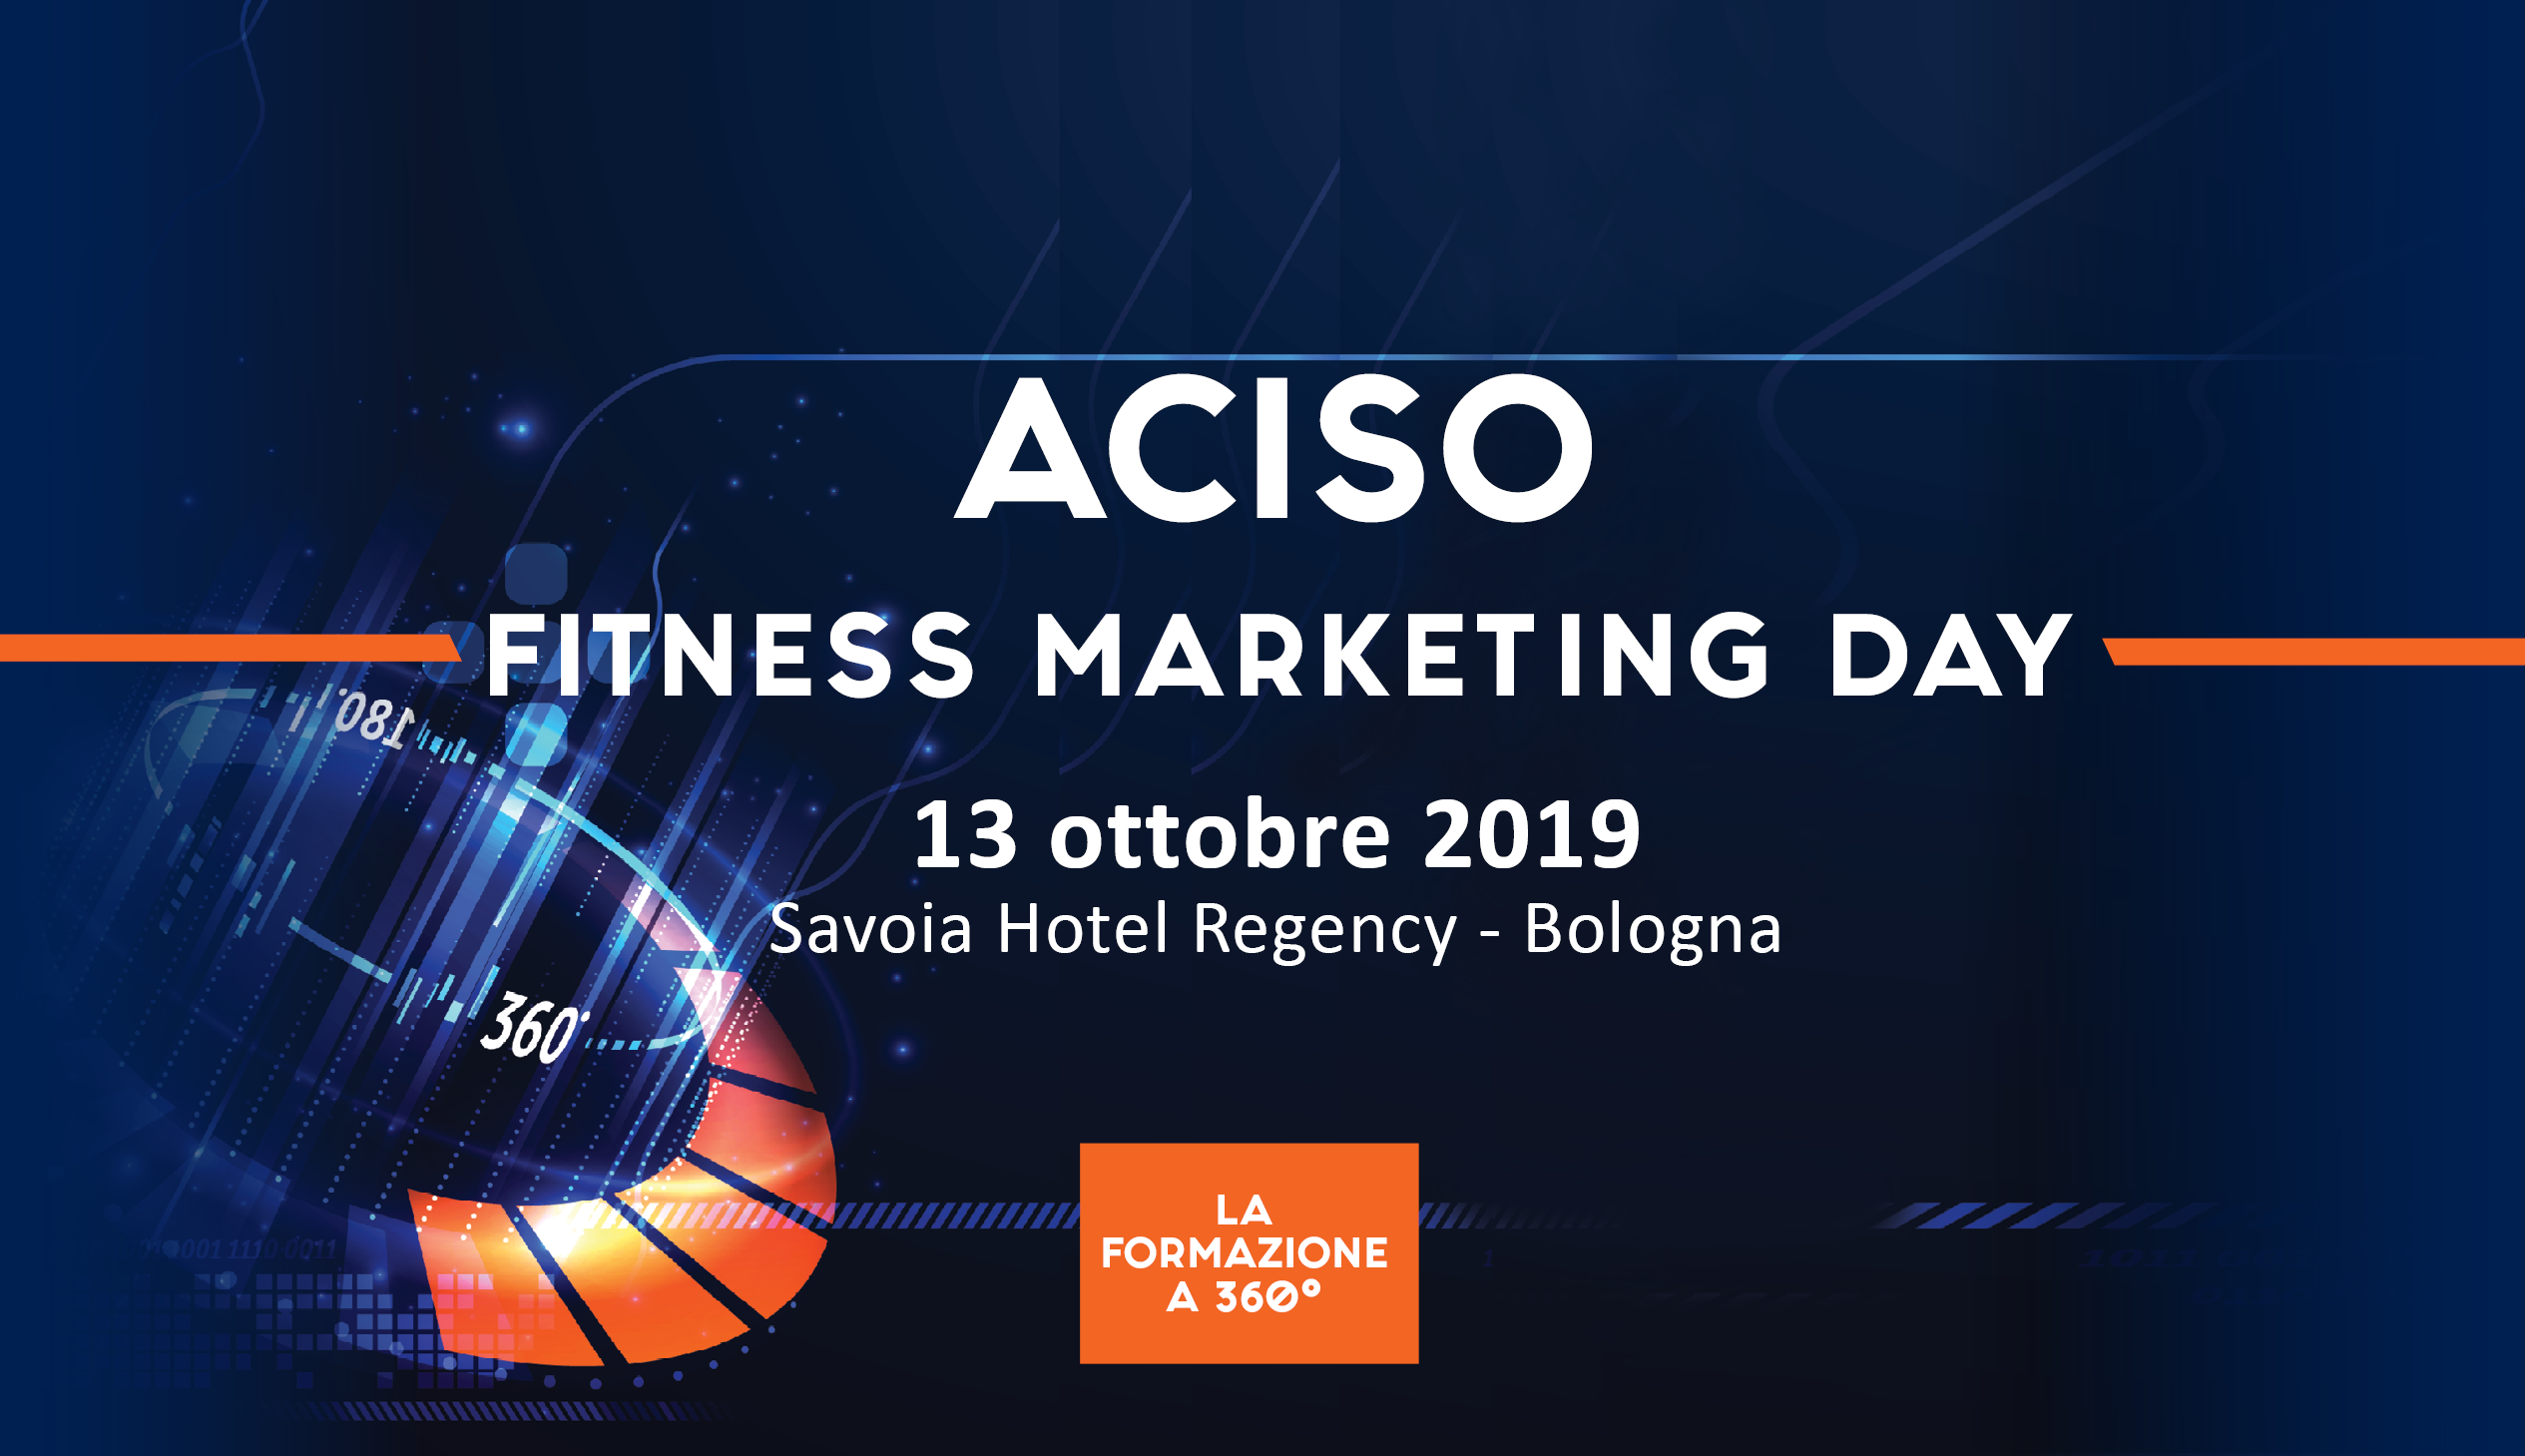 Aciso Fitness Marketing Day